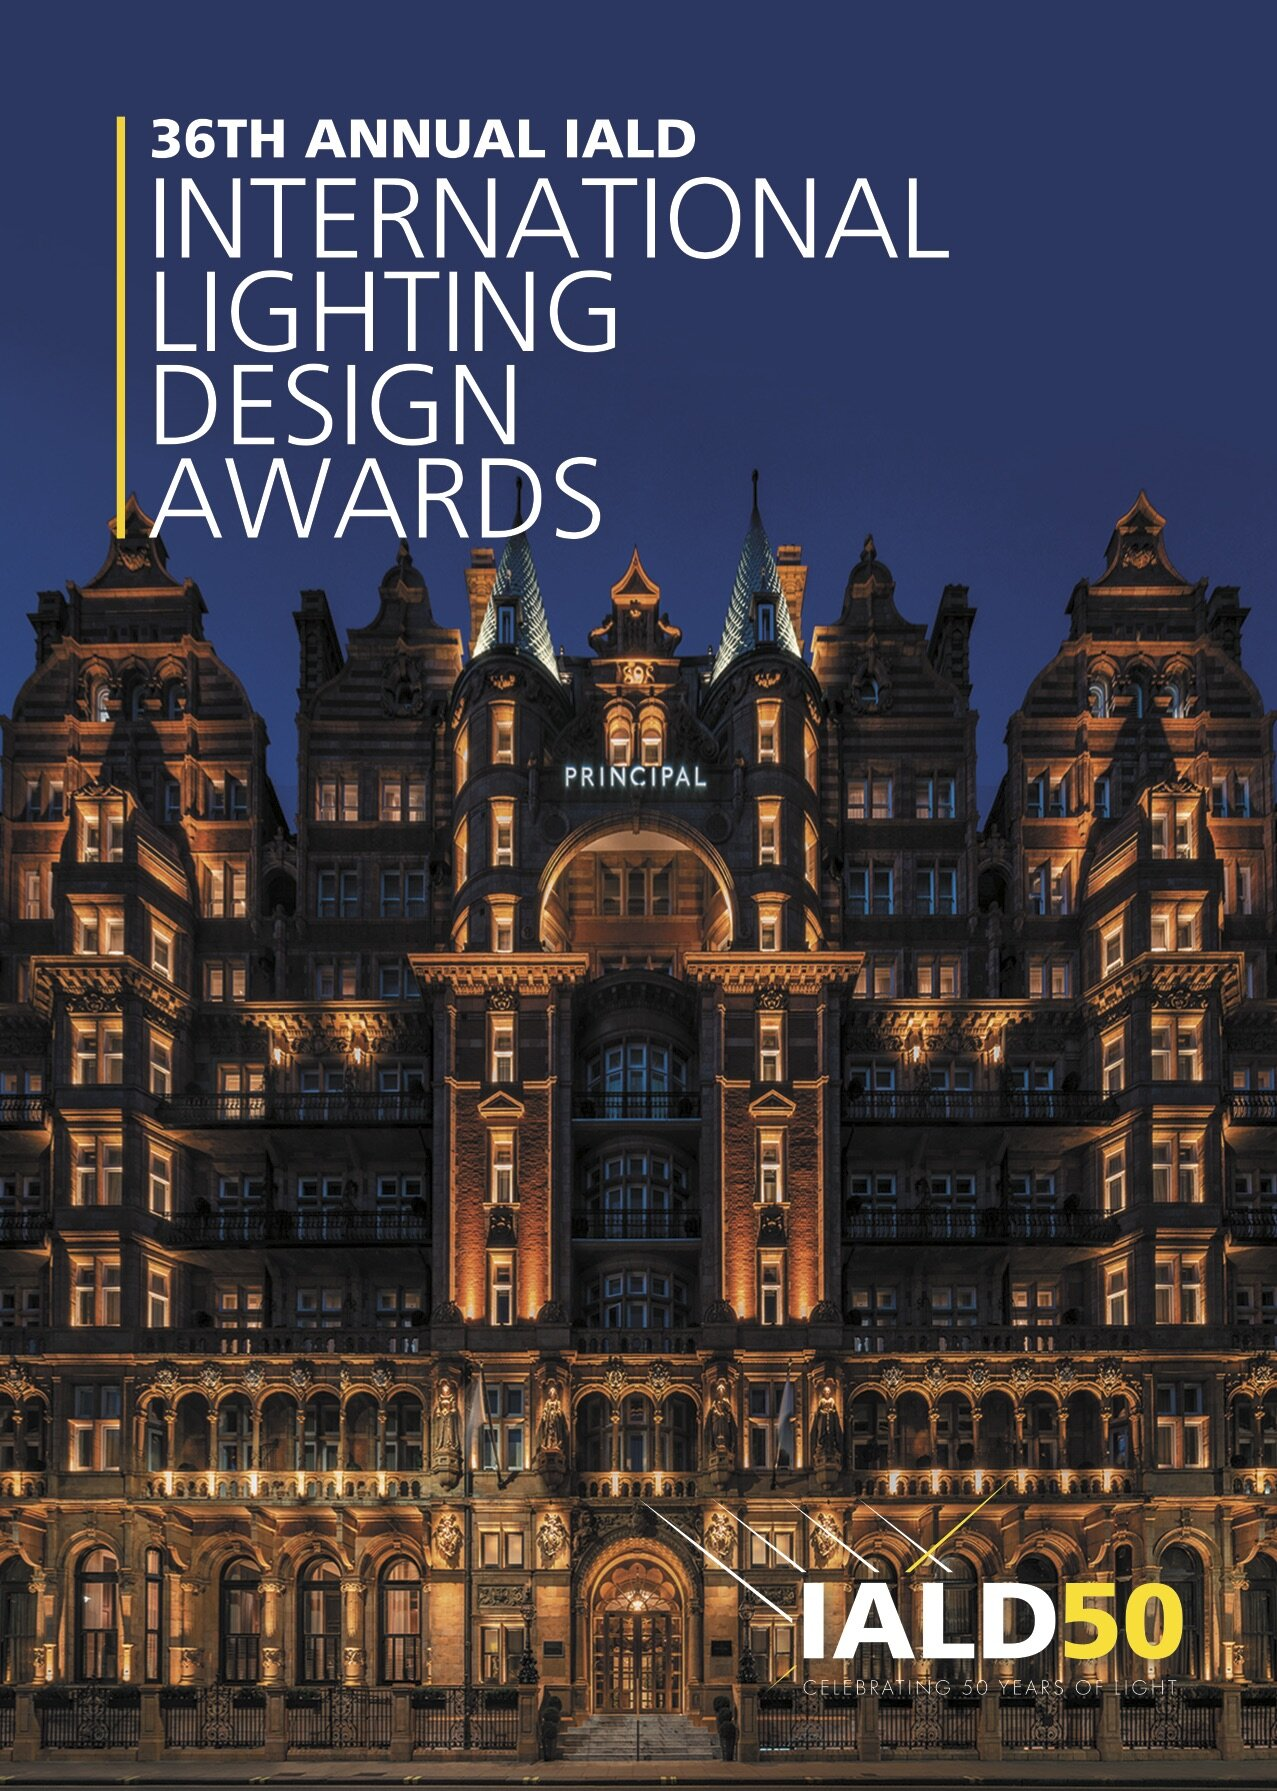 2019 Awards Book for the 36th Annual IALD International Lighting Deign Awards.   Click to view full book.